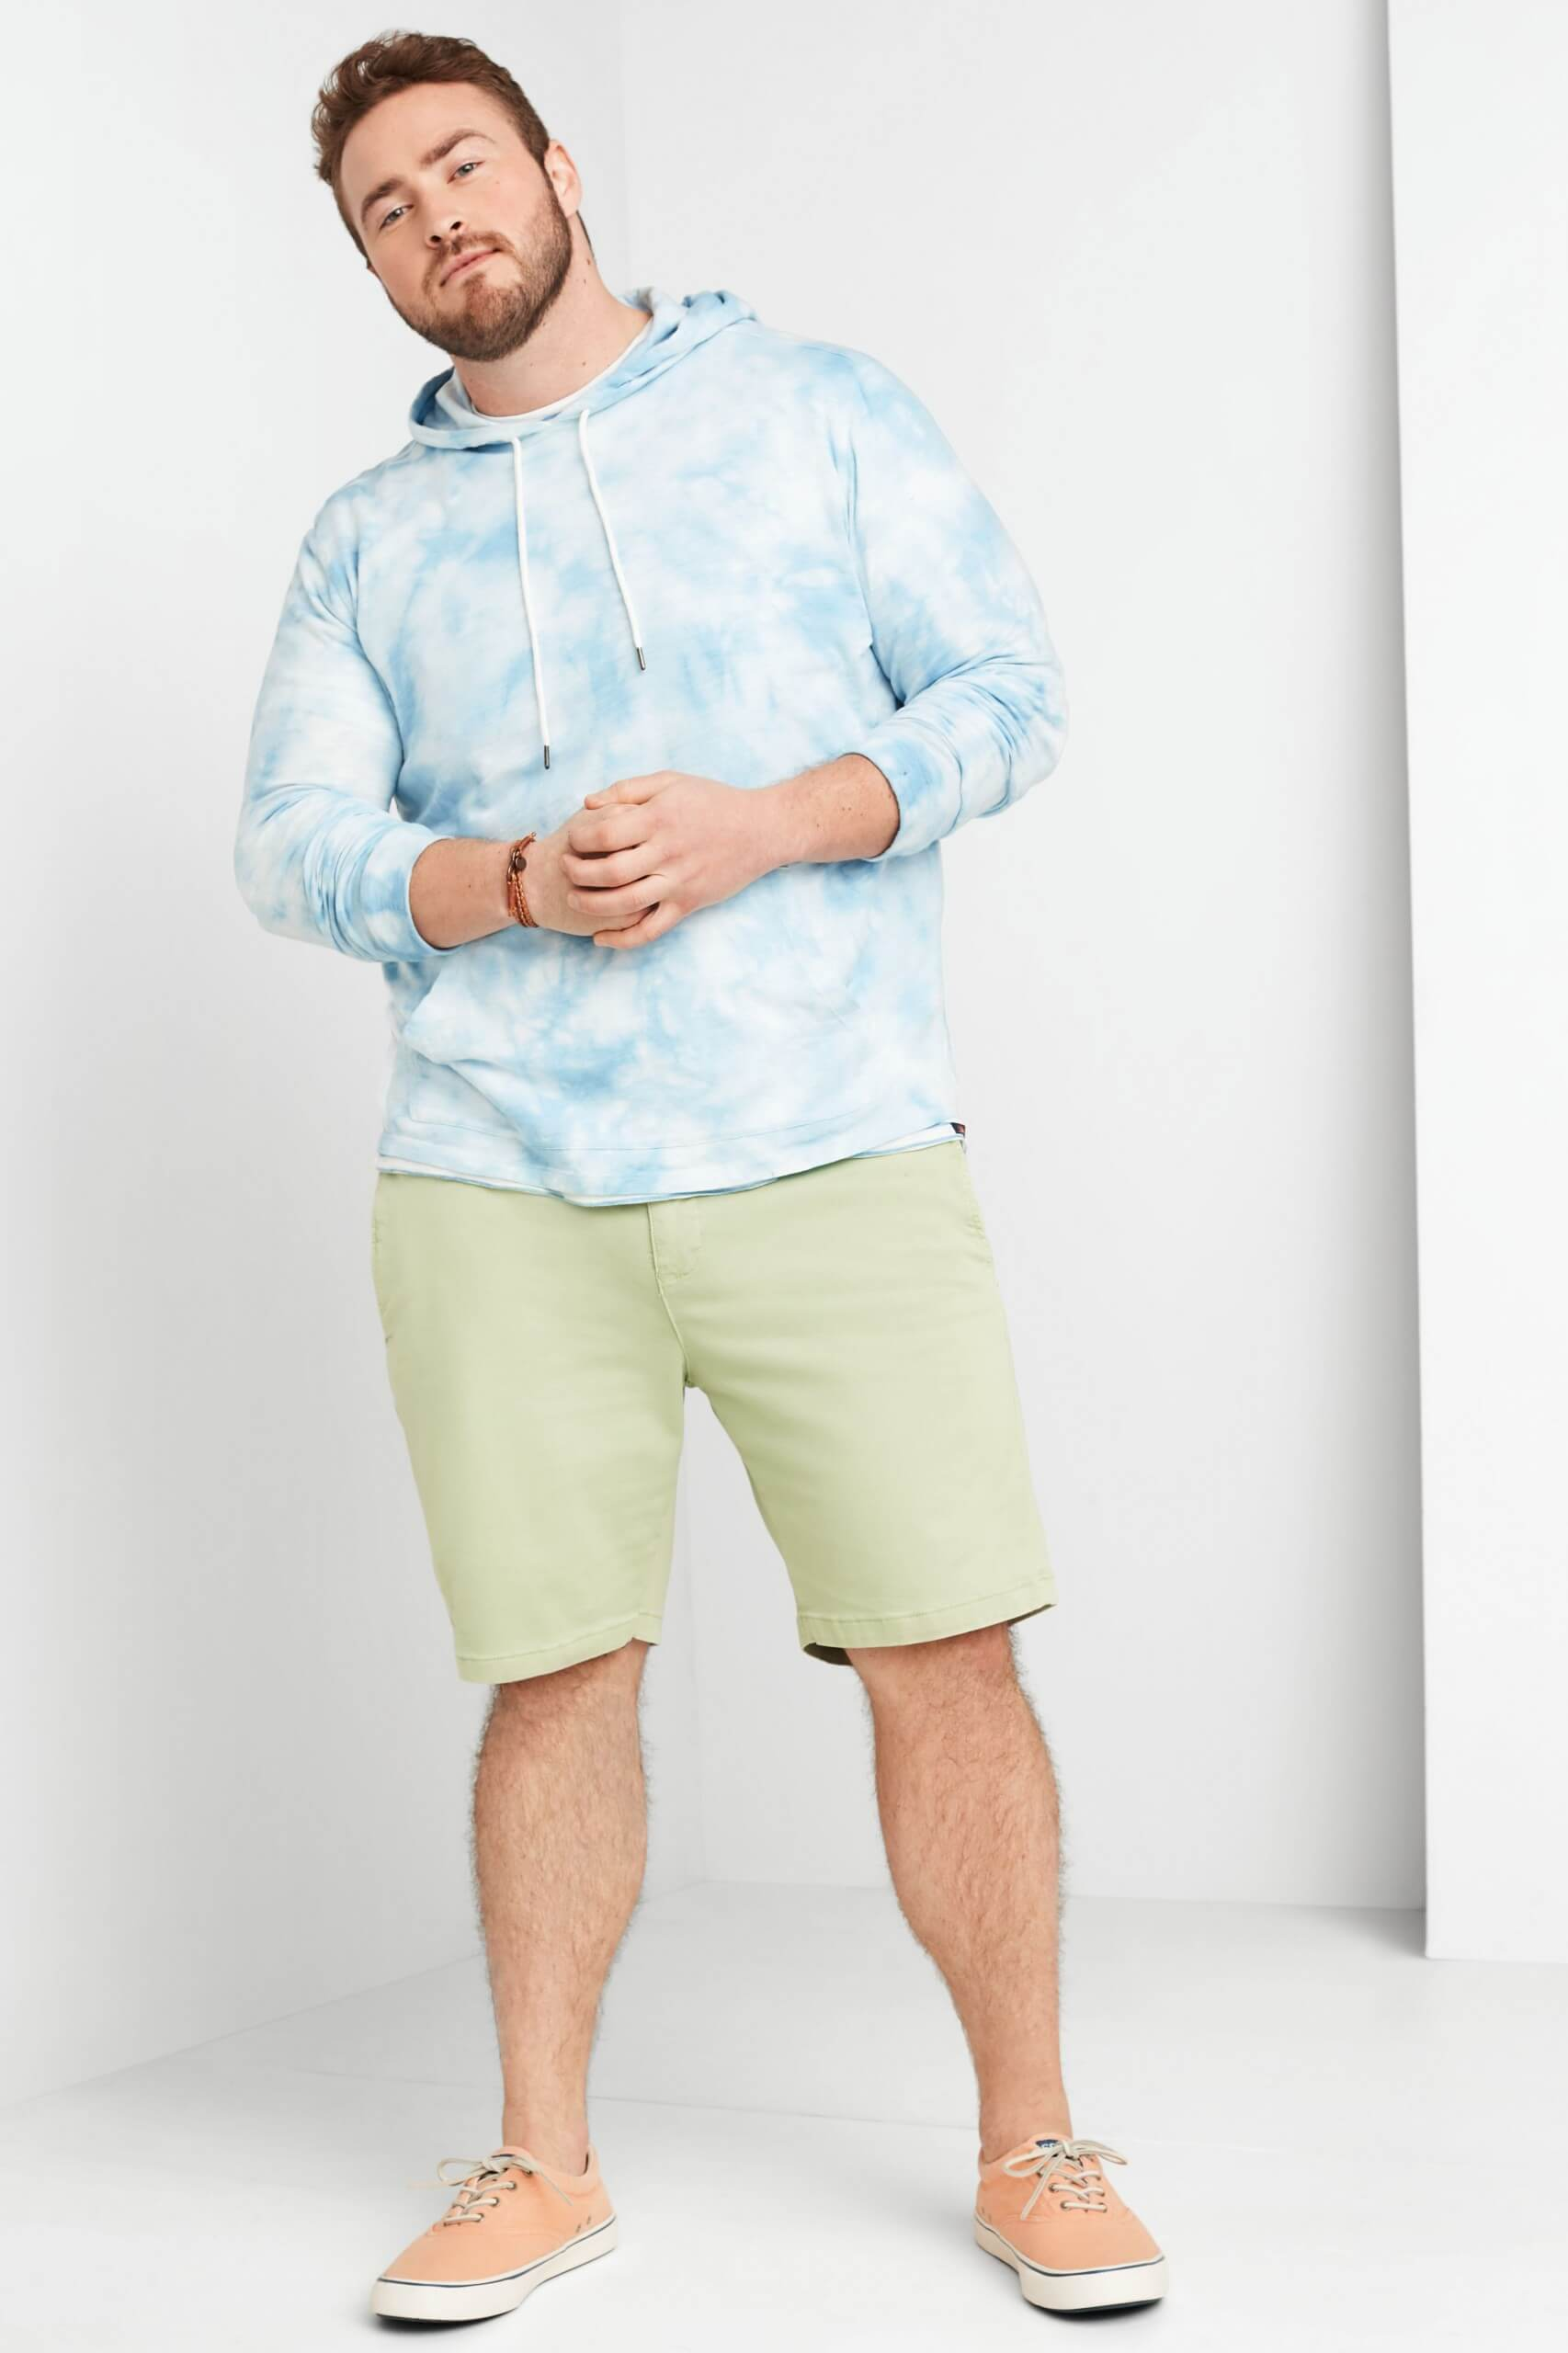 Stitch Fix Men's model wearing baby blue tie-dye hoodie, green shorts and white sneakers.